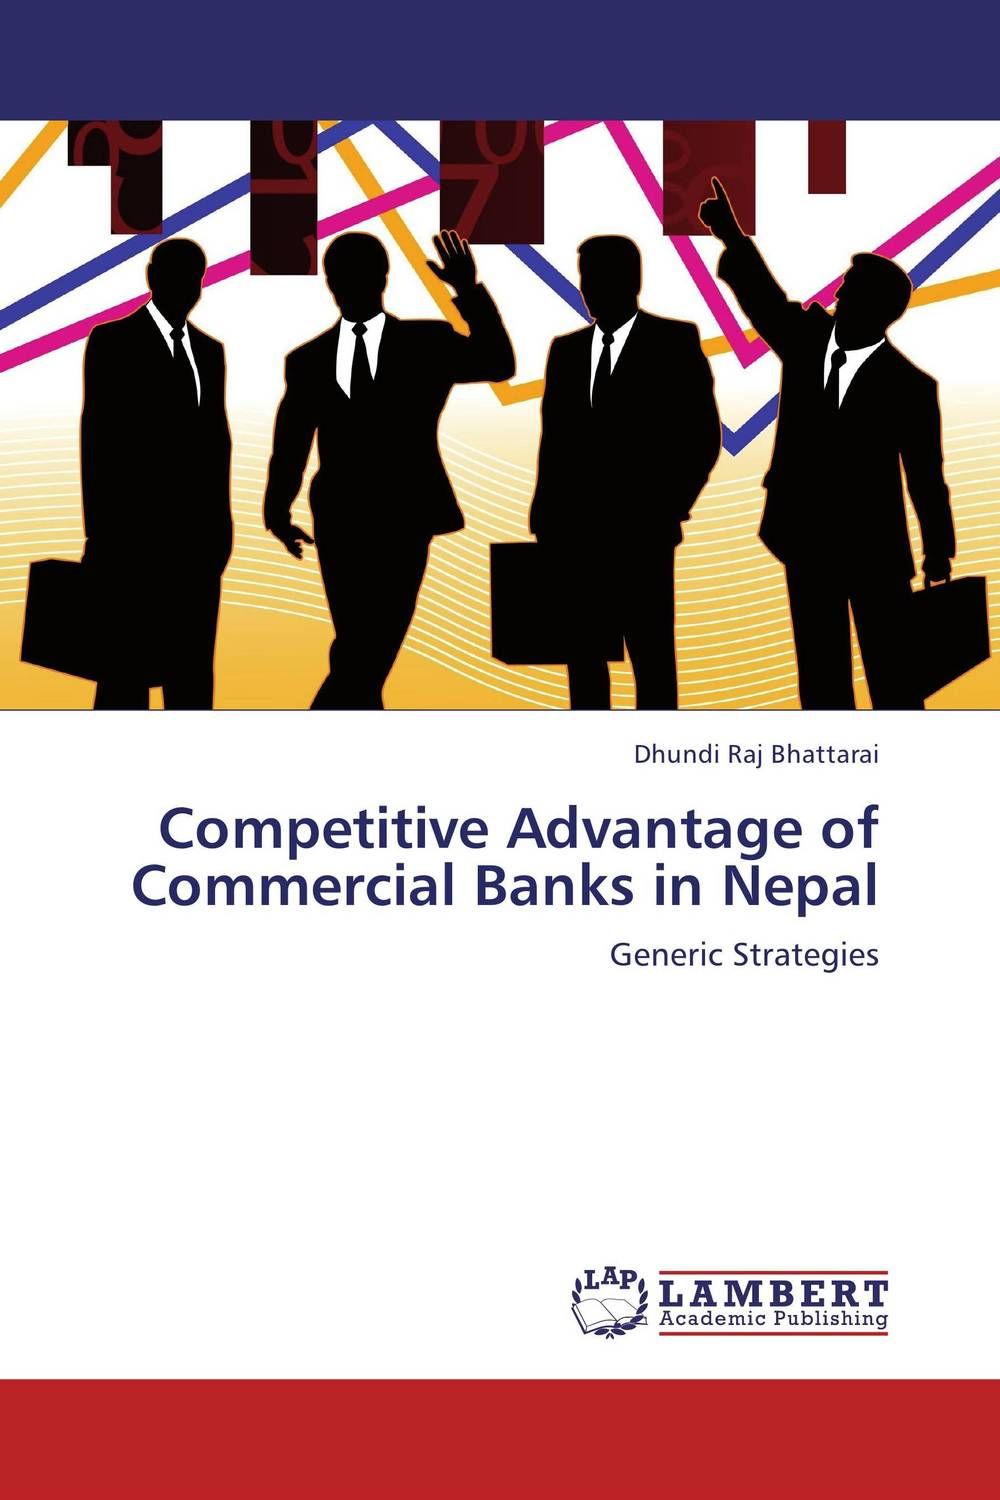 Competitive Advantage of Commercial Banks in Nepal credit risk grading adopted by private commercial banks